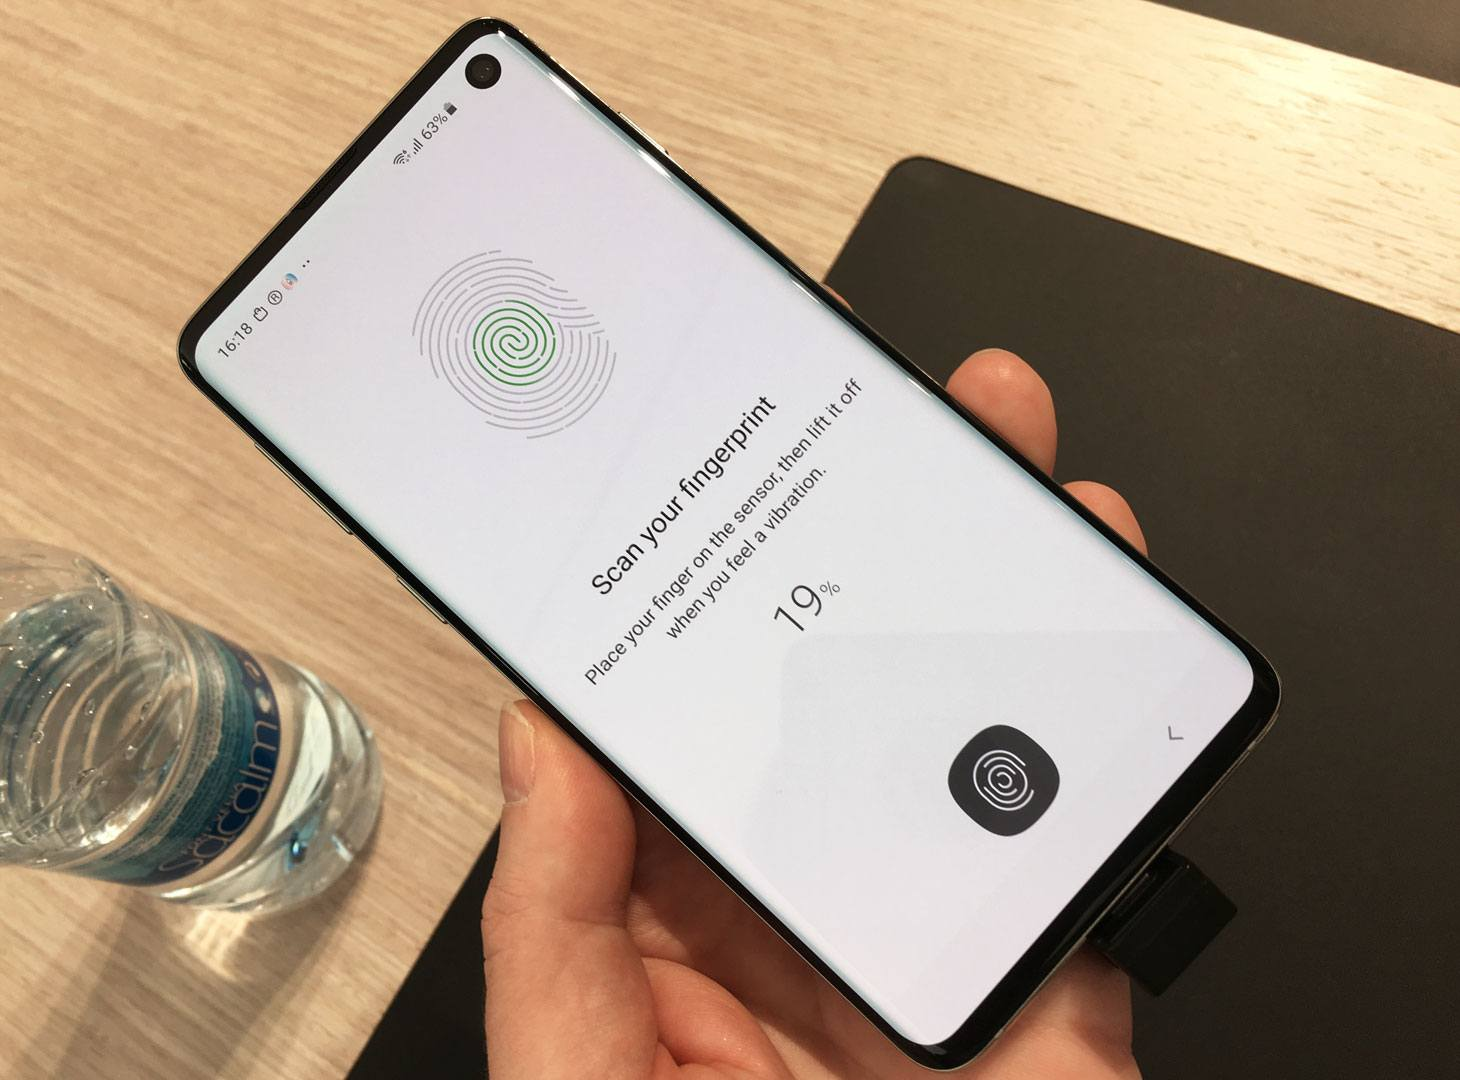 A lot of smartphones on display at MWC19 had ultrasonic fingerprint sensors